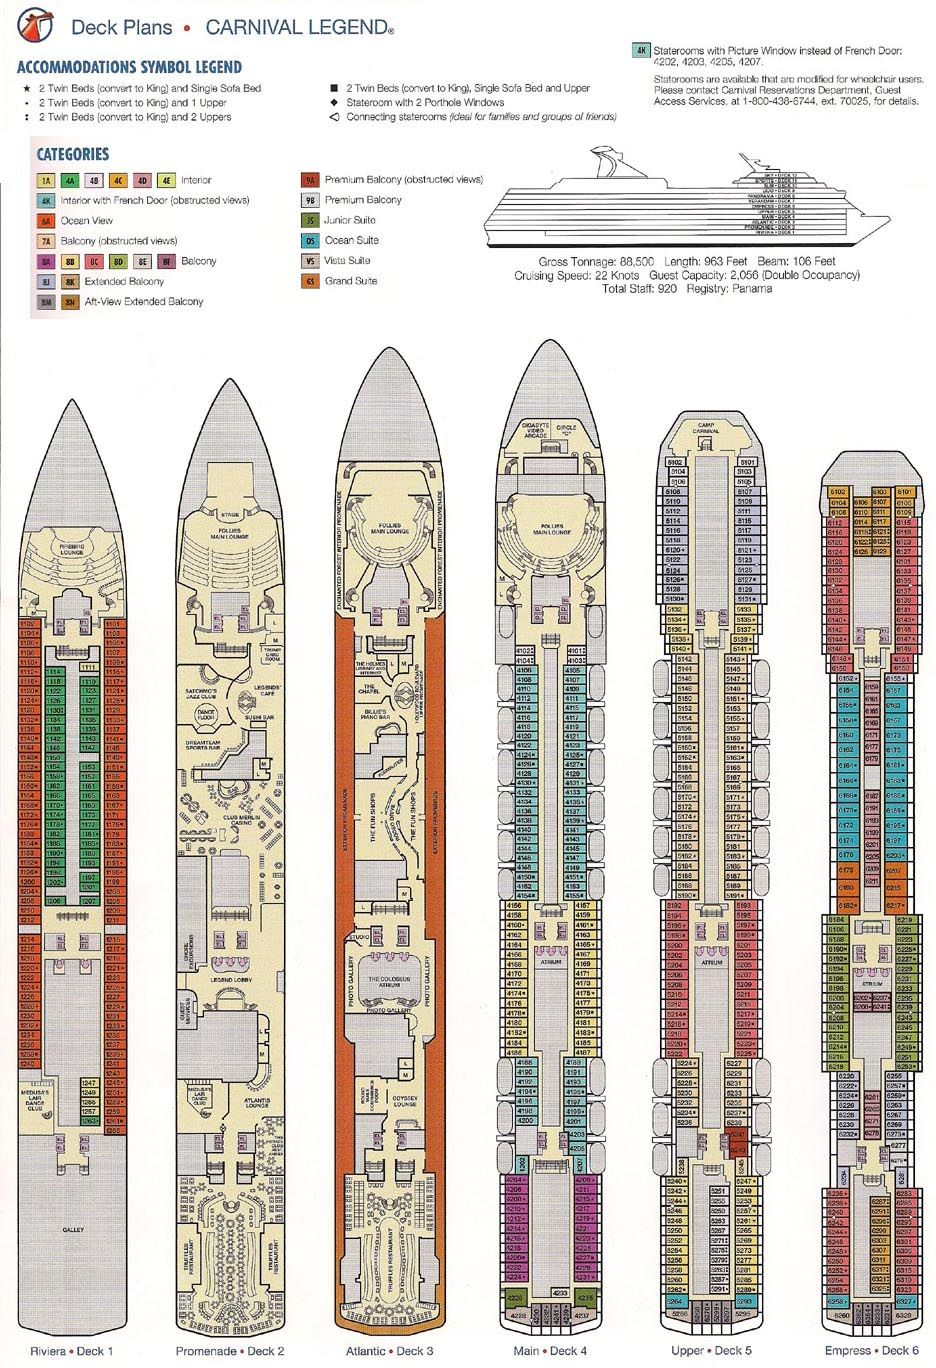 carnival legend deck plans - Google Search | Cruising in 2019 ... on